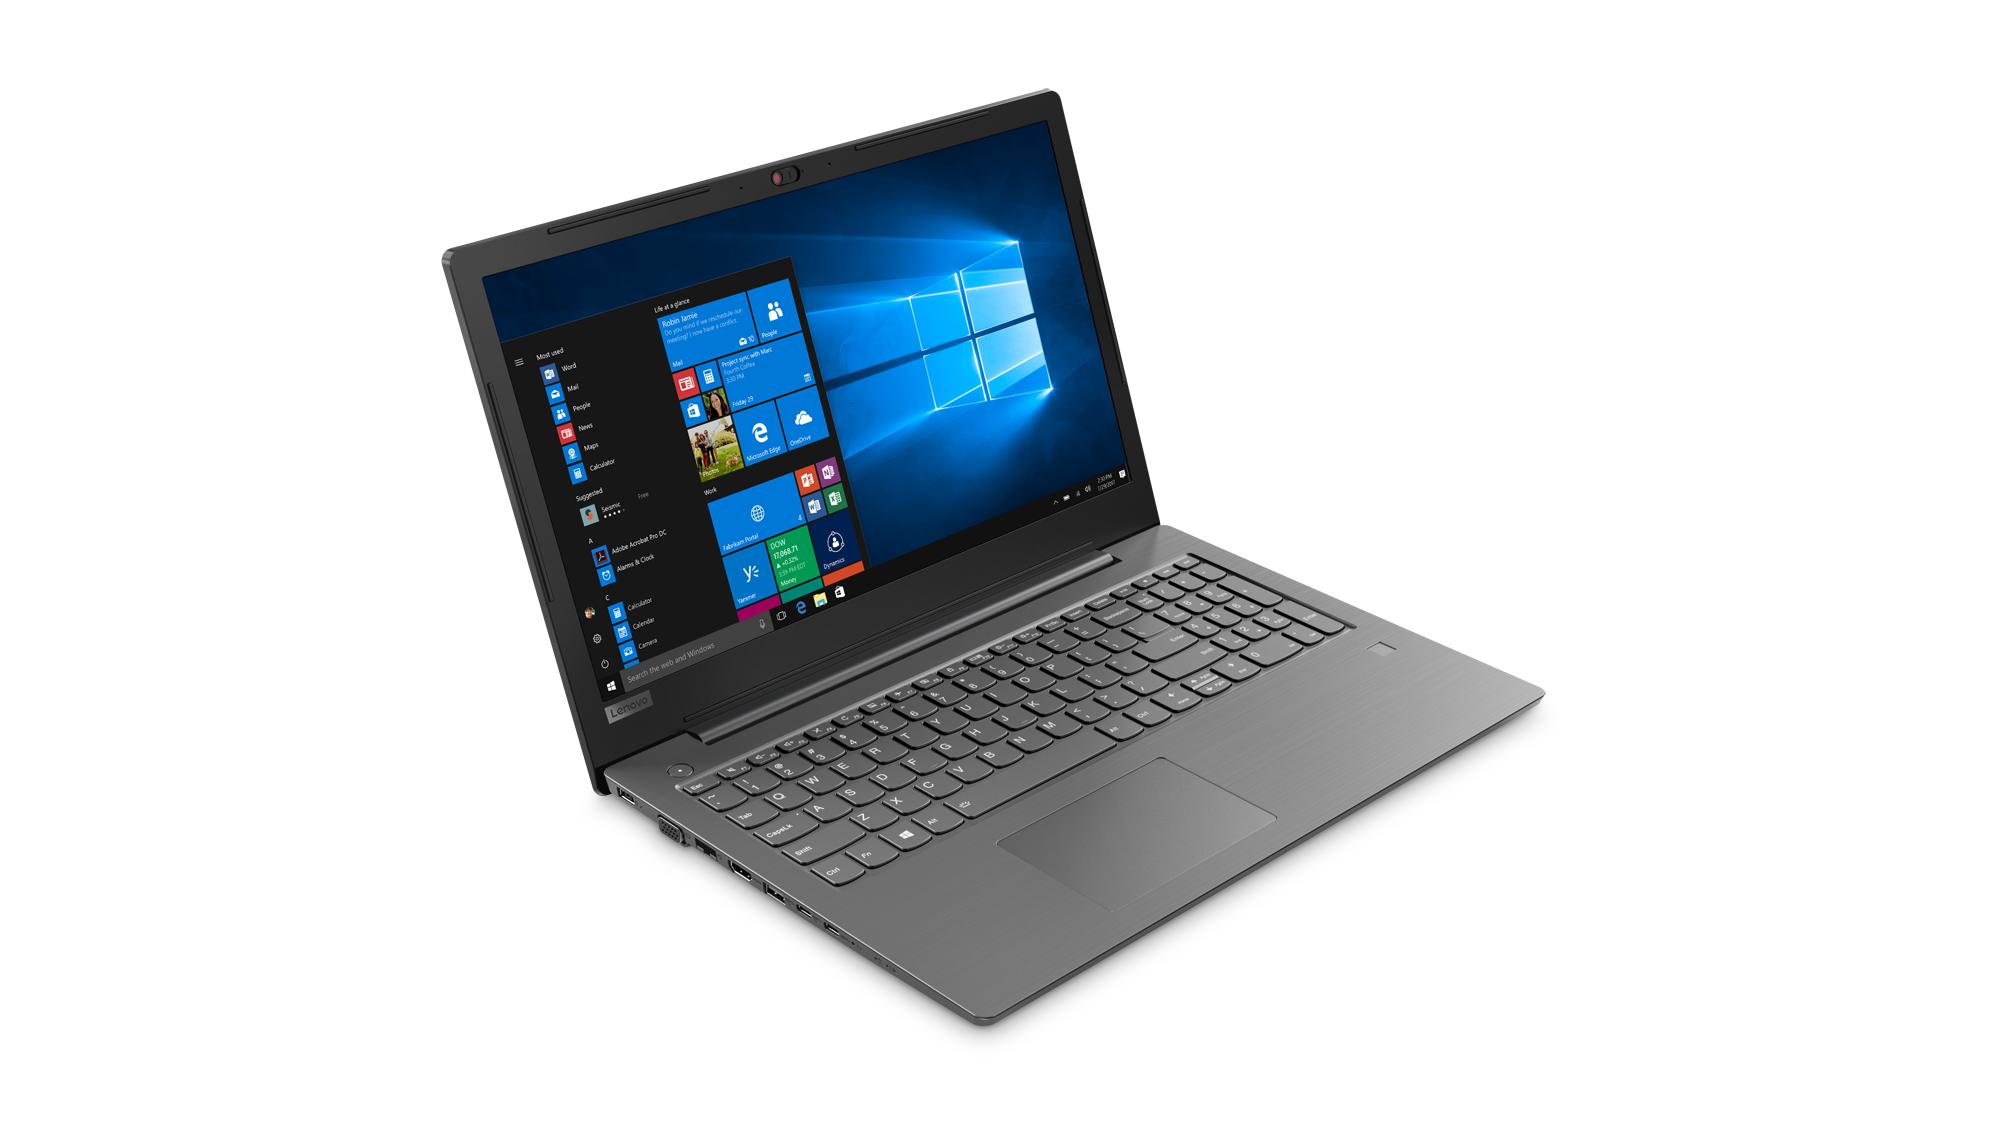 Lenovo V330-15IKB, Intel Core i3-8130U (2.2MHz up to 3.4GHz,